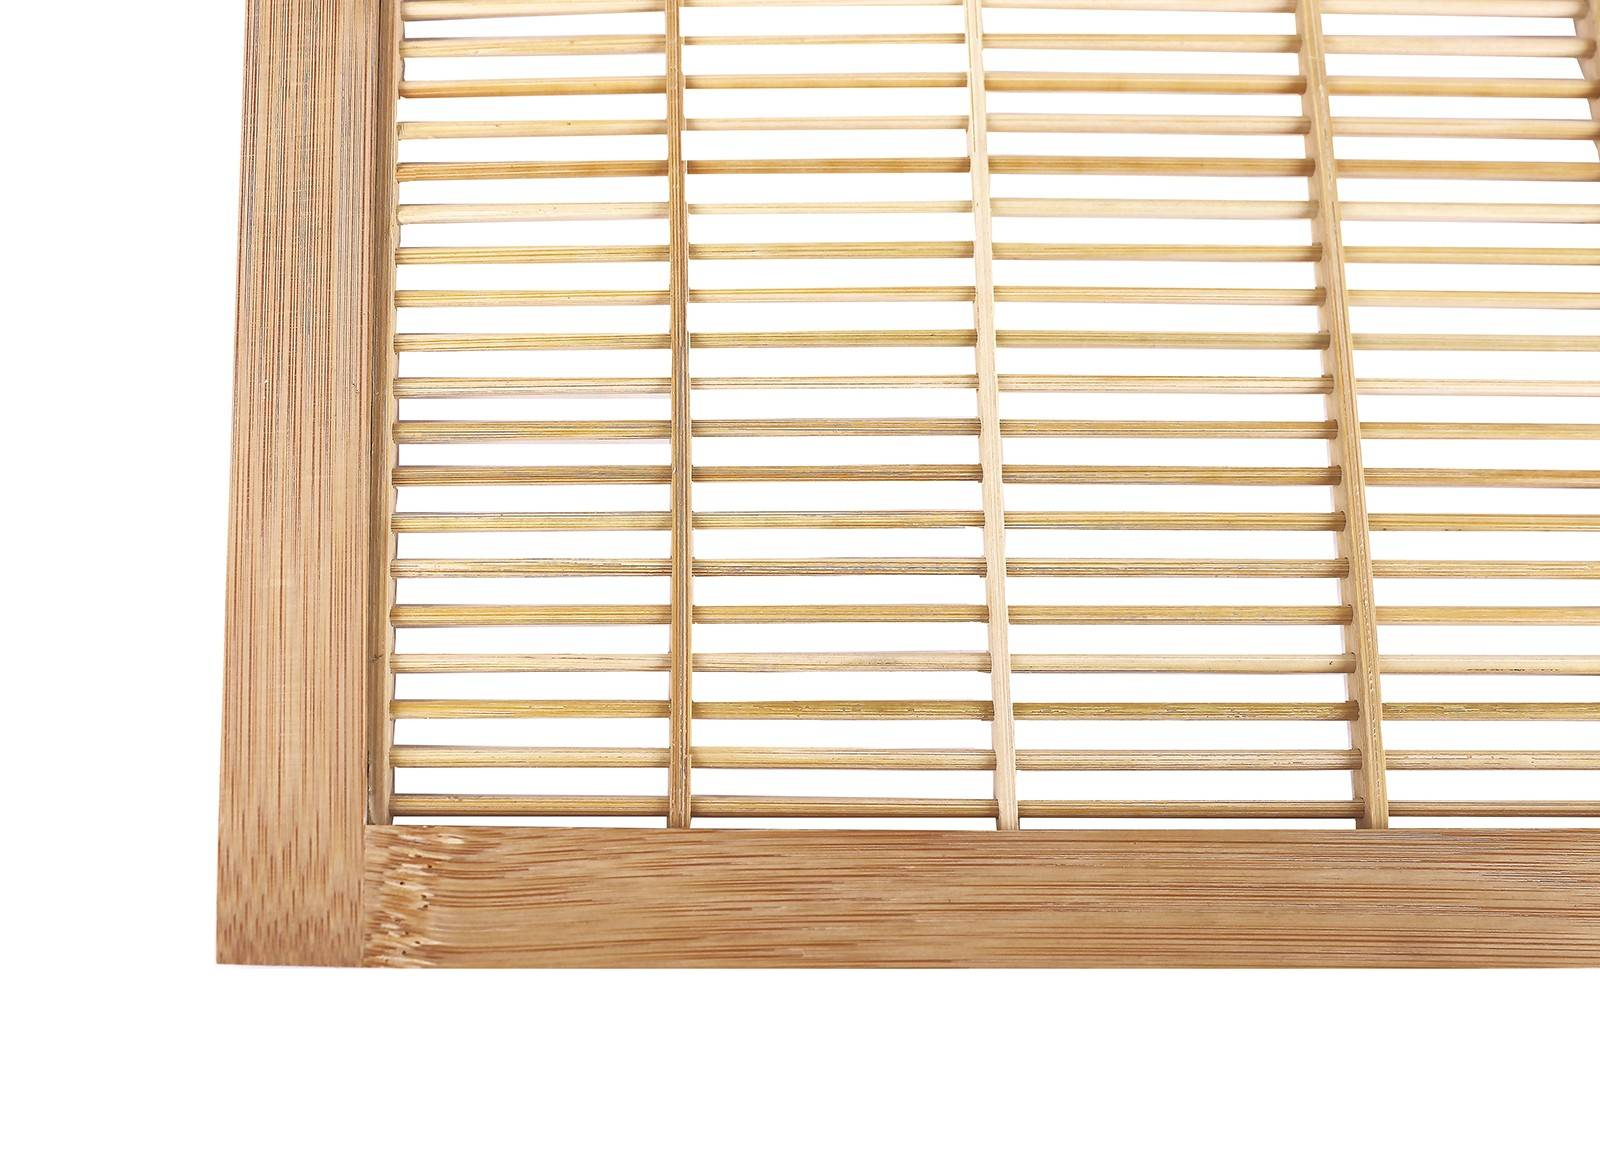 Bamboo Queen Excluder for 10 Frame Hive